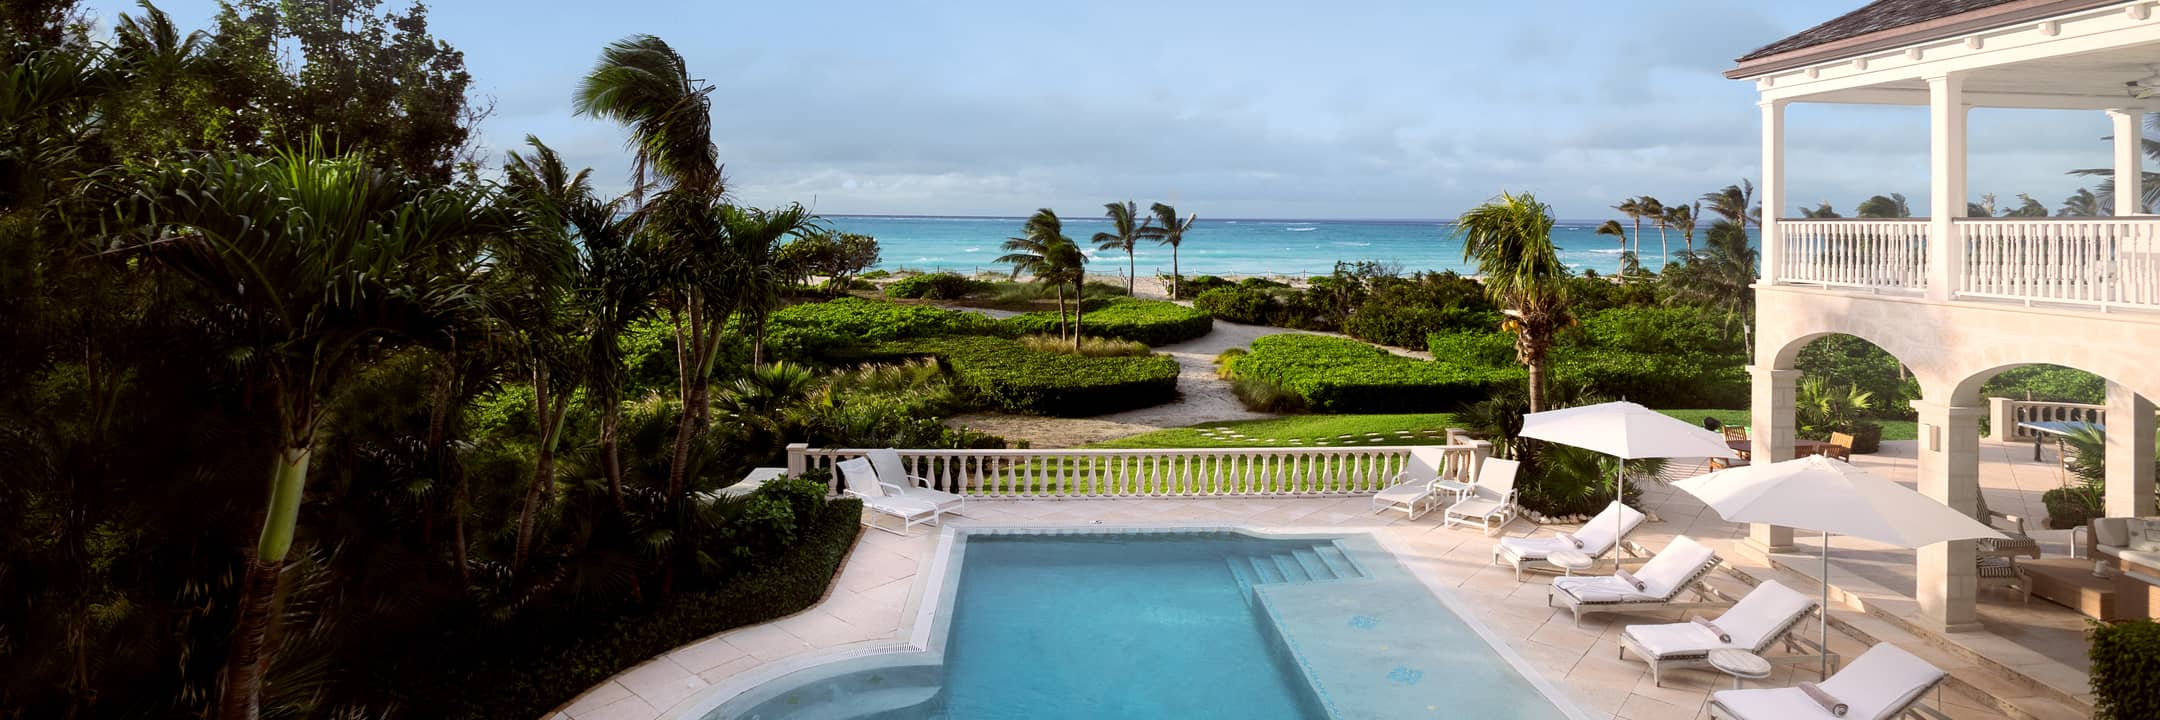 Luxury rentals in Turks i Caicos